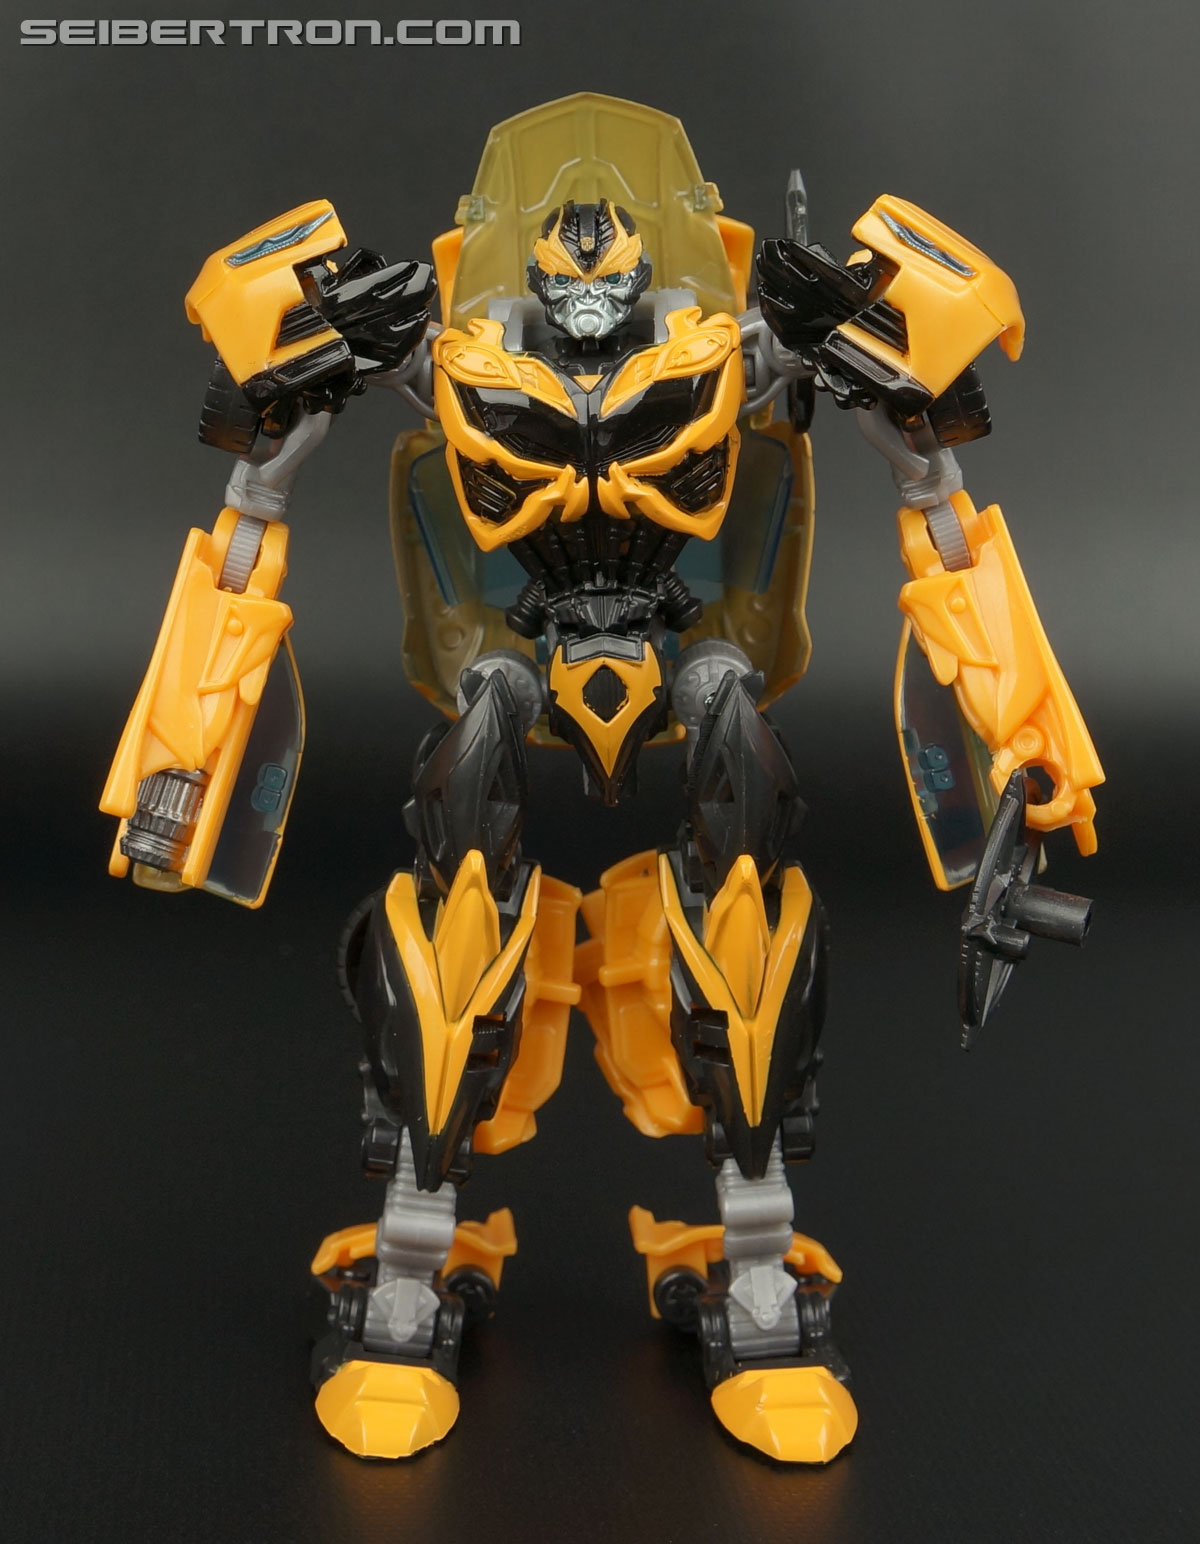 Transformers Age of Extinction: Generations Bumblebee (Image #59 of 190)